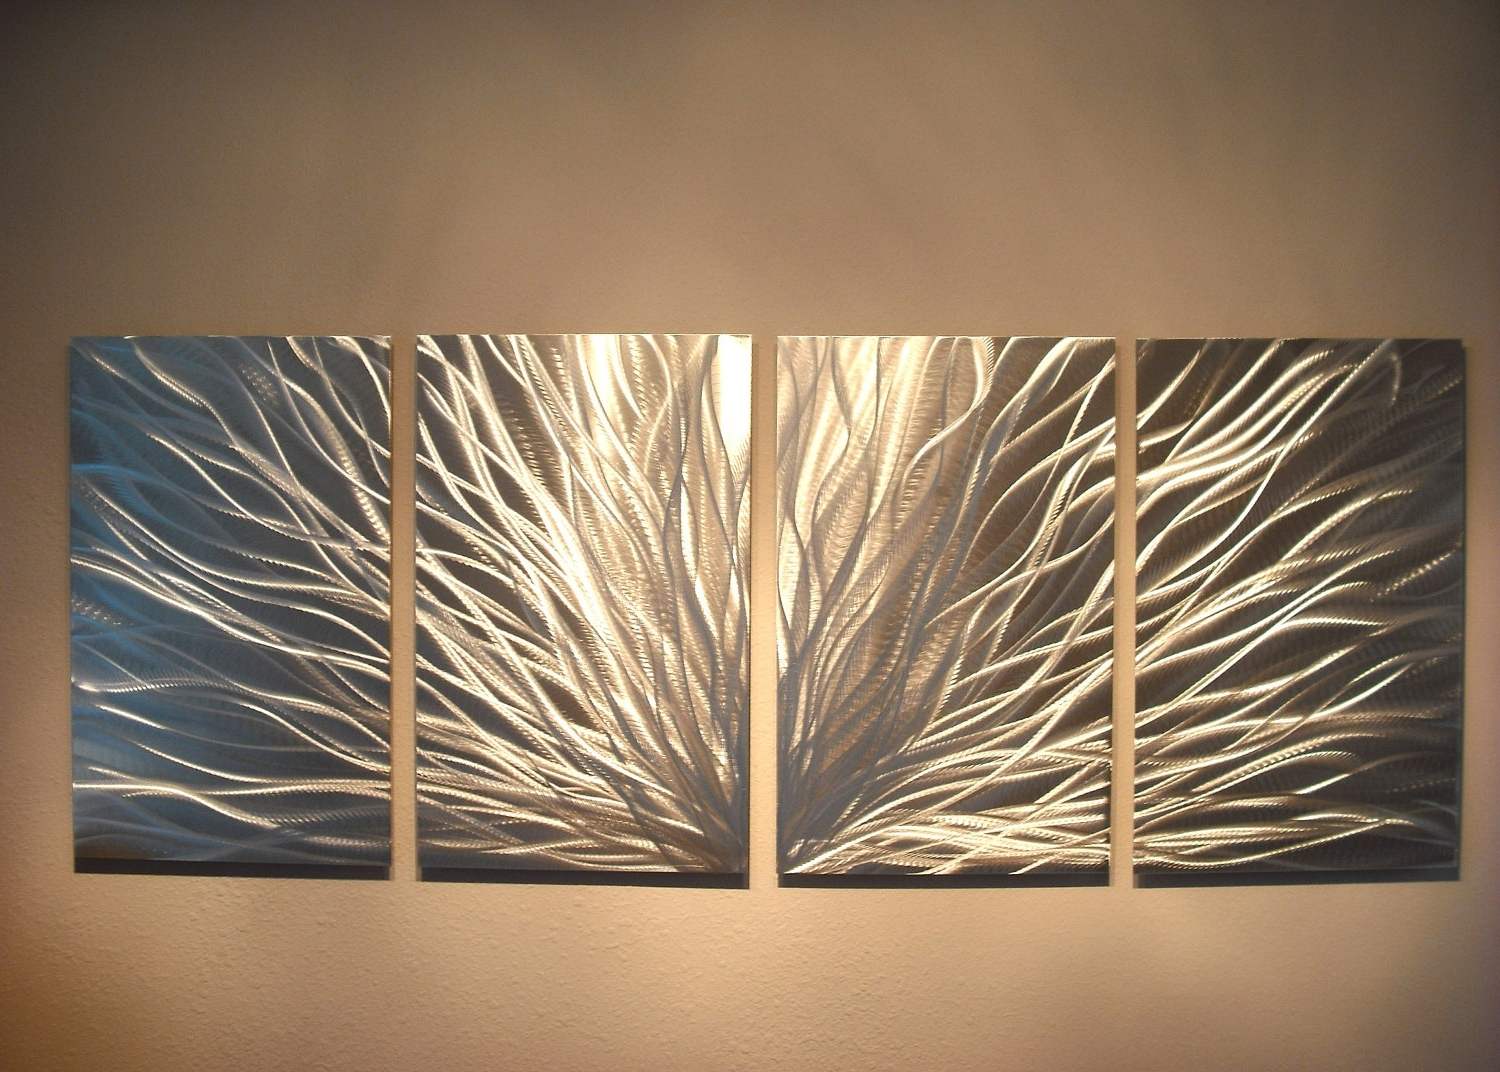 Fashionable Abstract Metal Wall Art Painting Regarding Radiance – Abstract Metal Wall Art Contemporary Modern Decor (View 11 of 15)